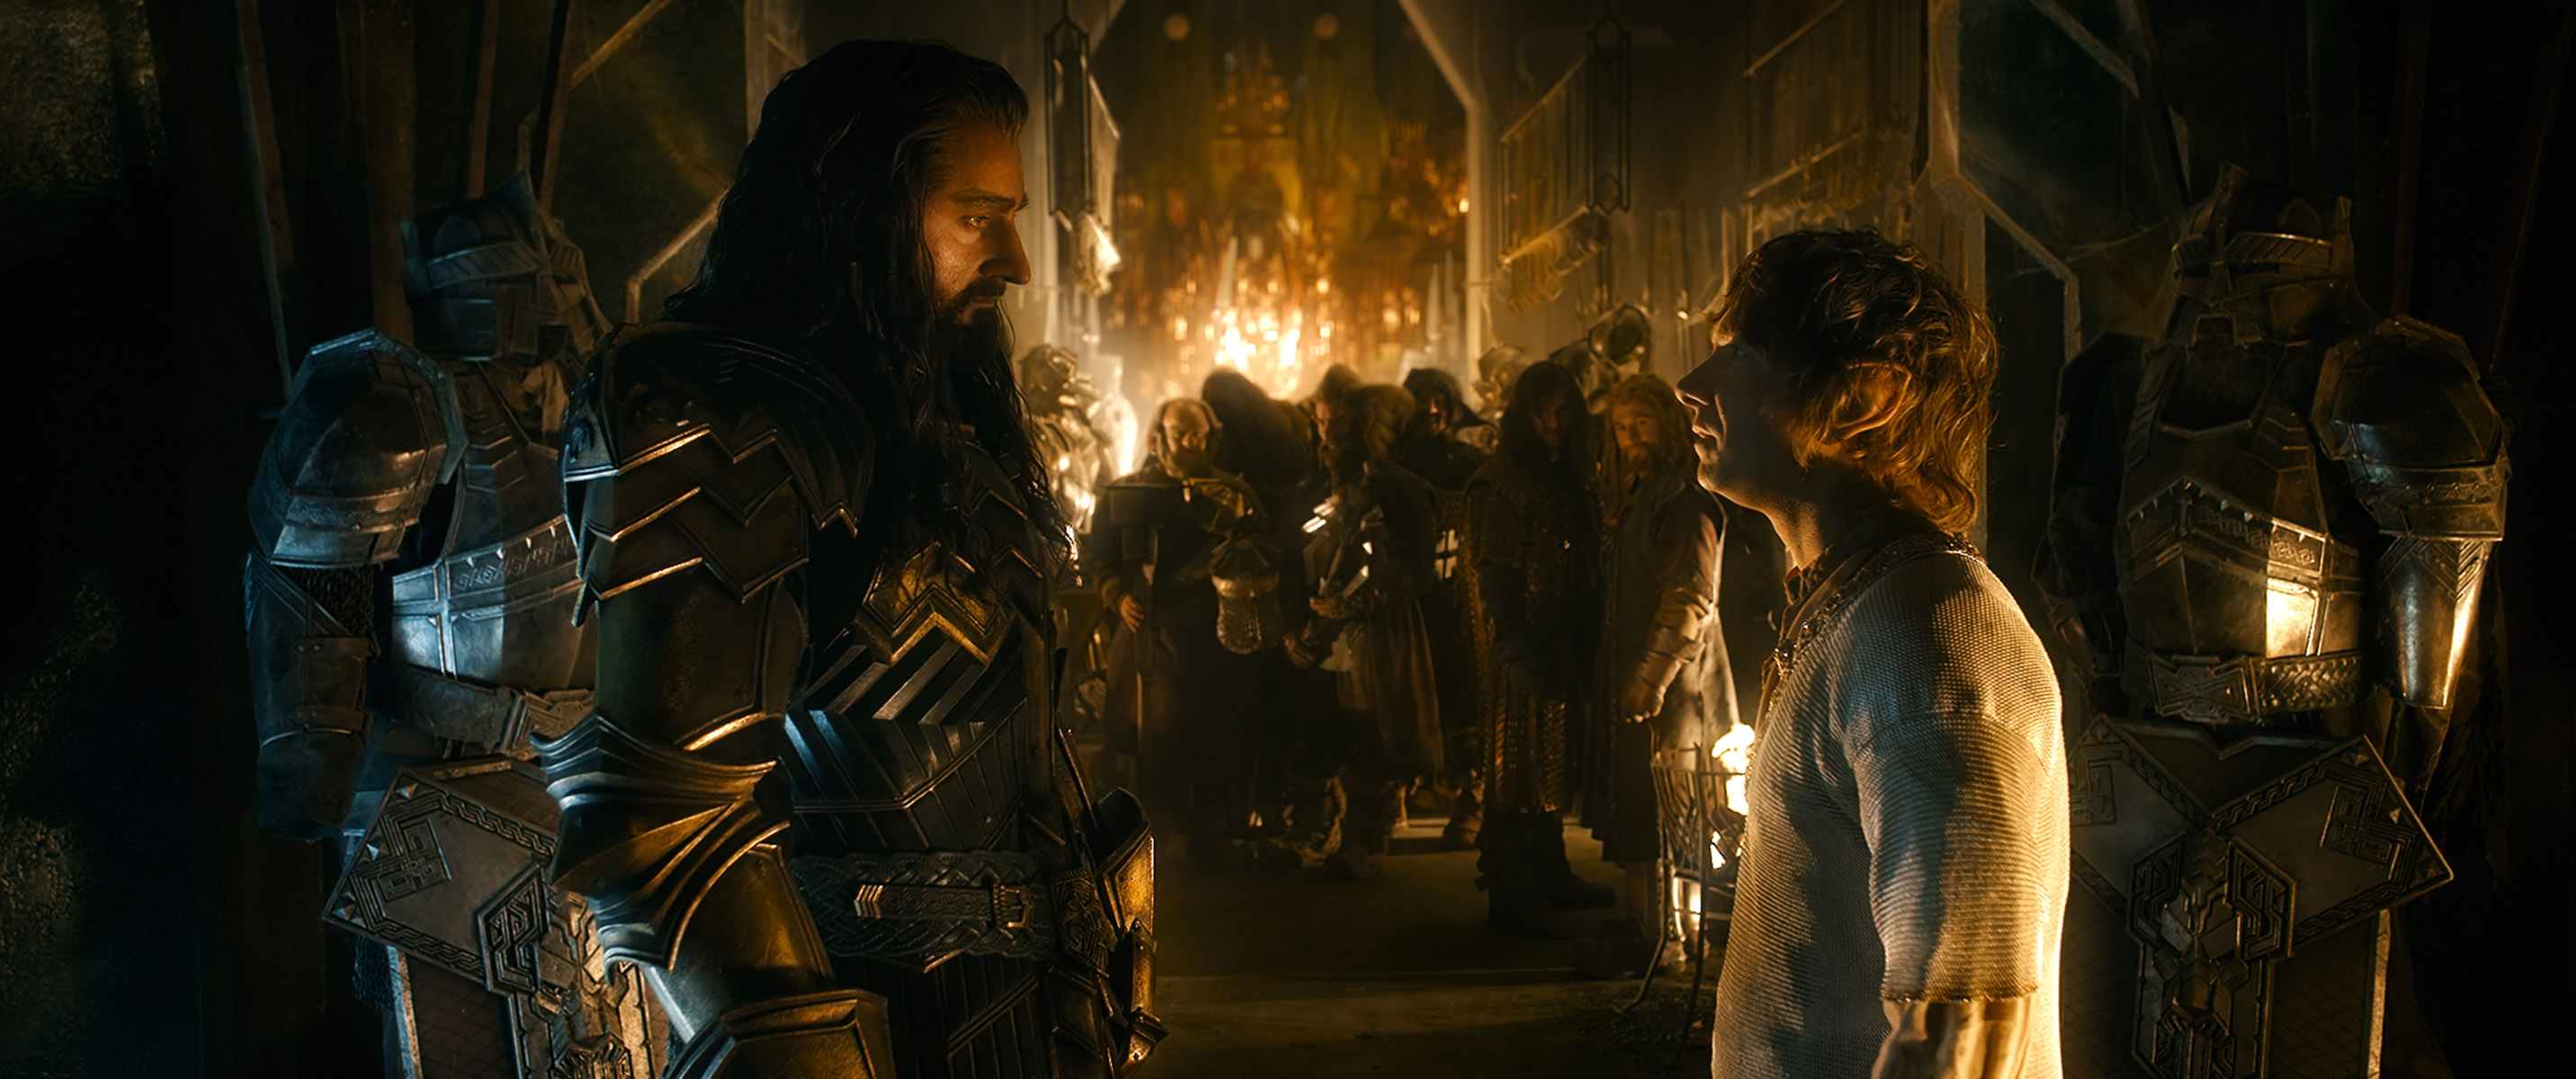 Elessar Reviews The Hobbit: The Battle of the Five Armies ...